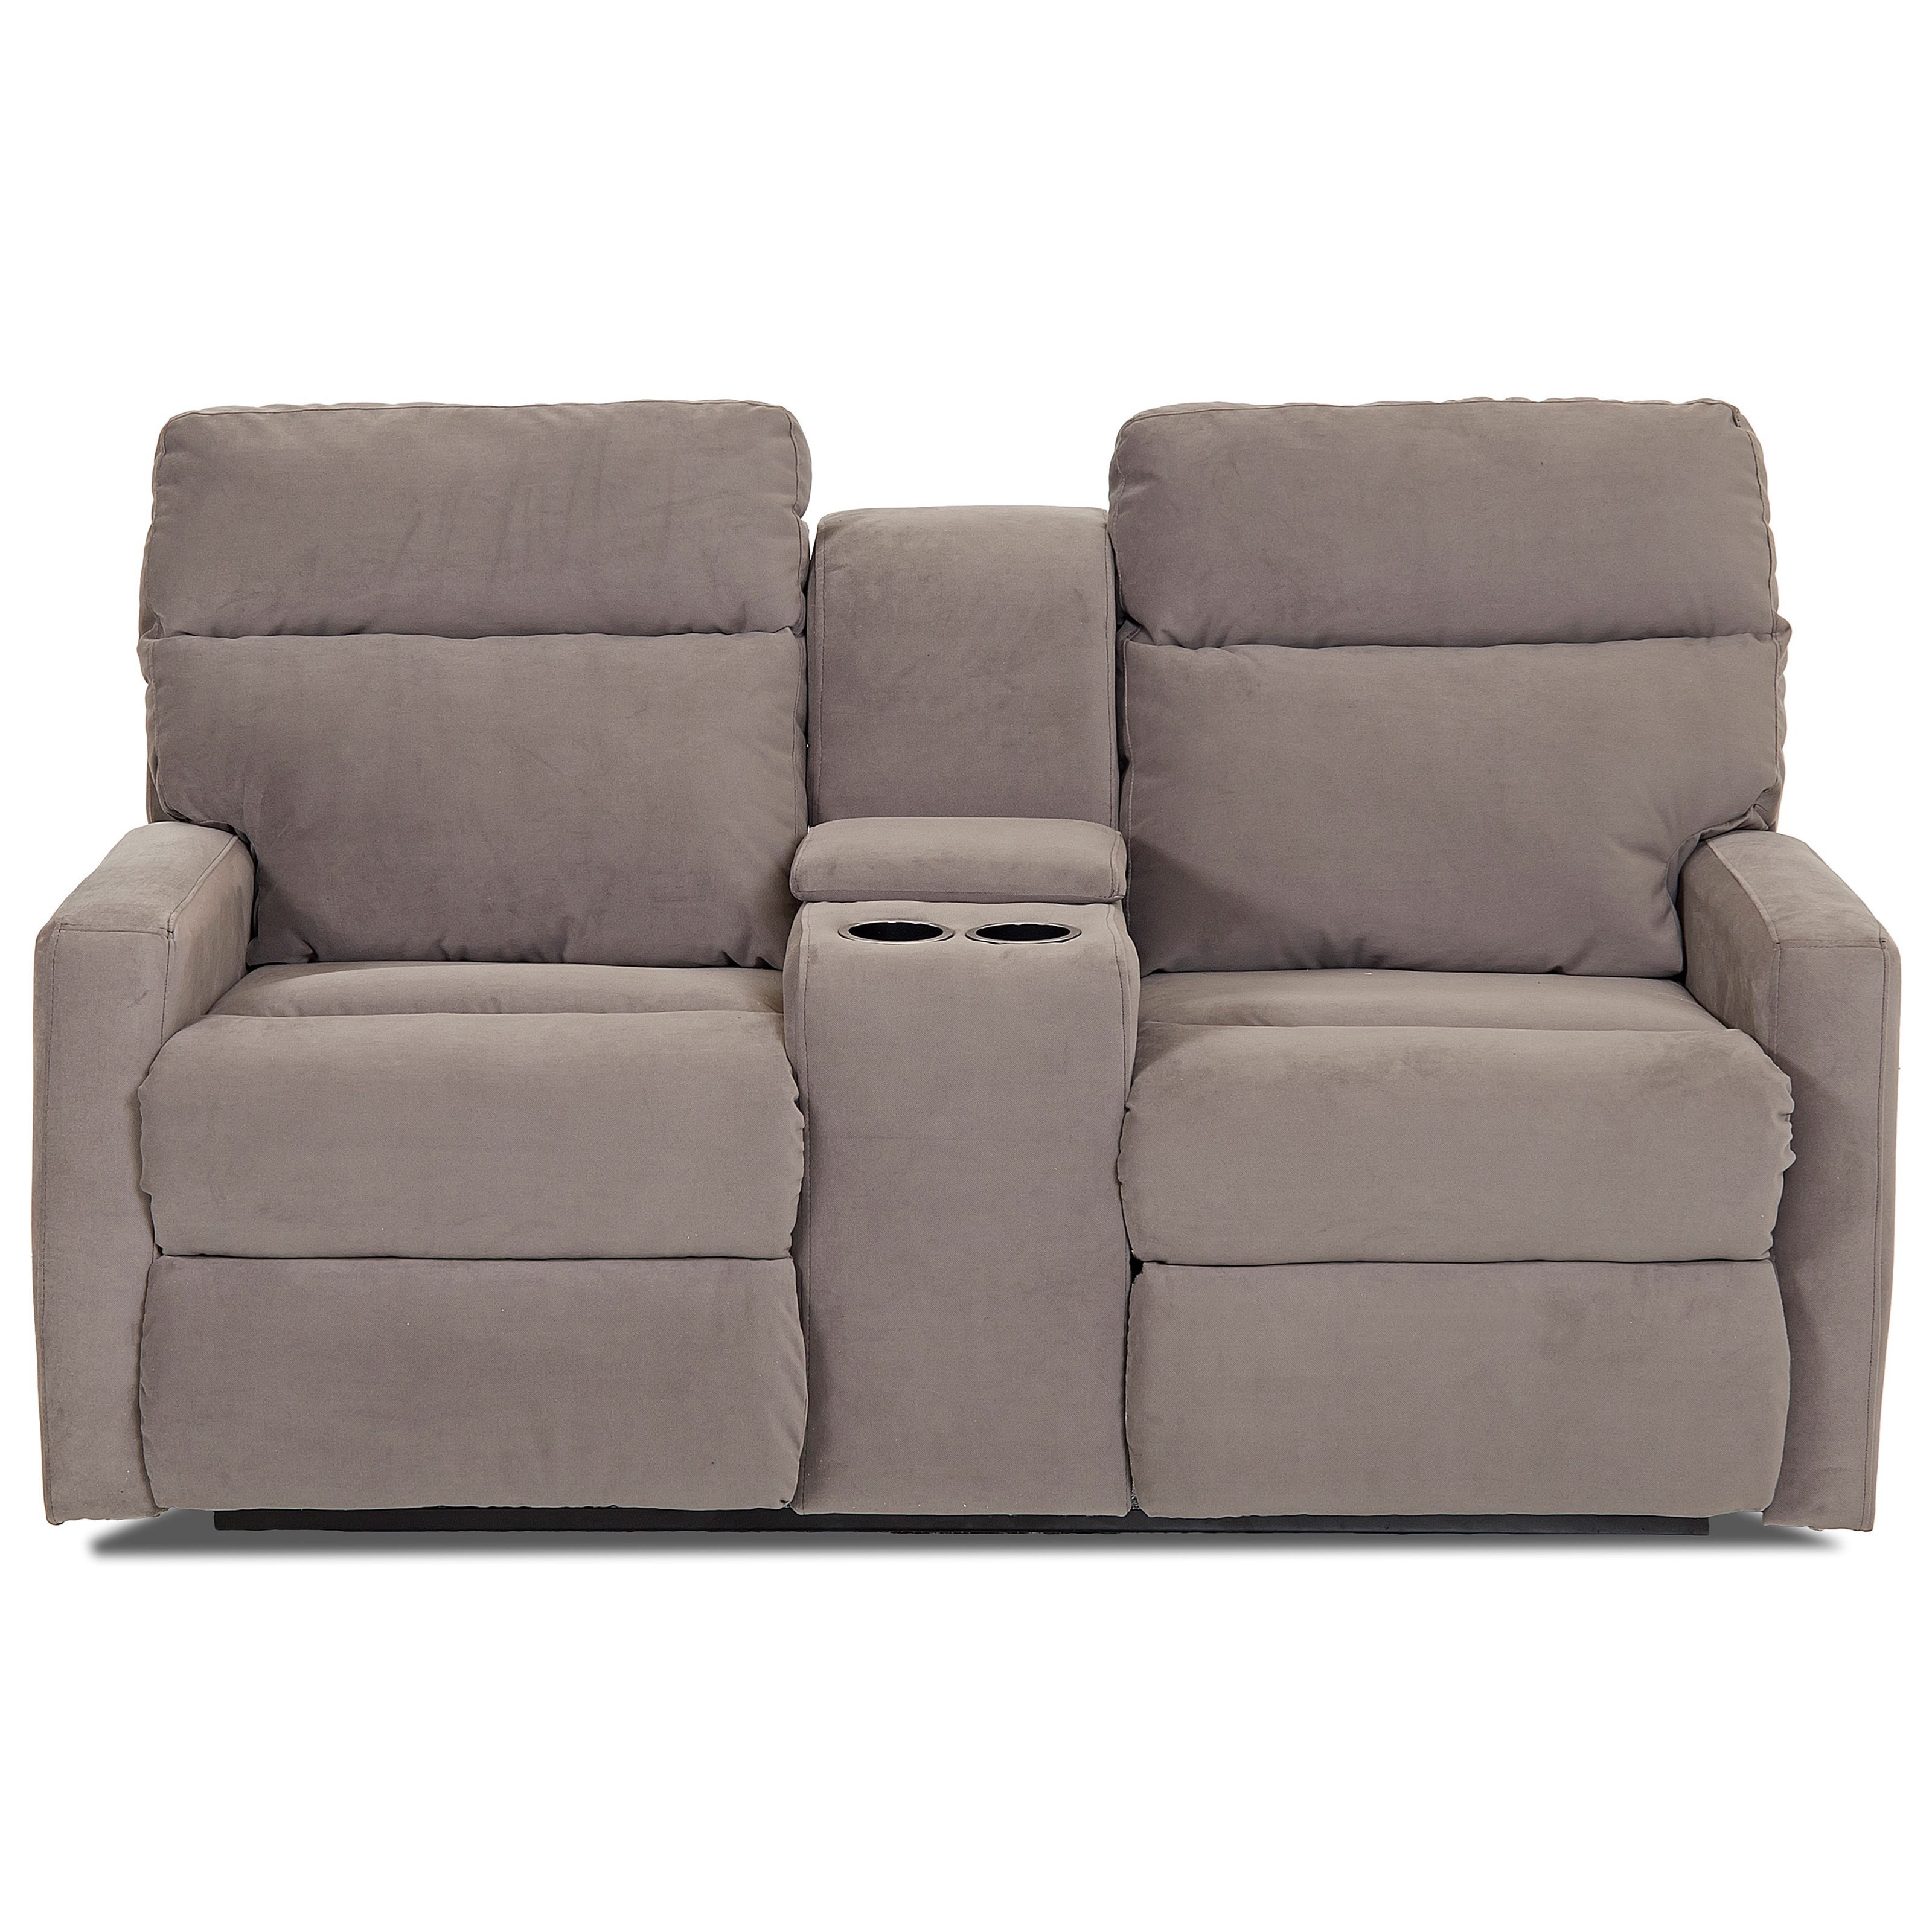 Power Reclining Loveseat with Cupholder Console and Storage Compartment